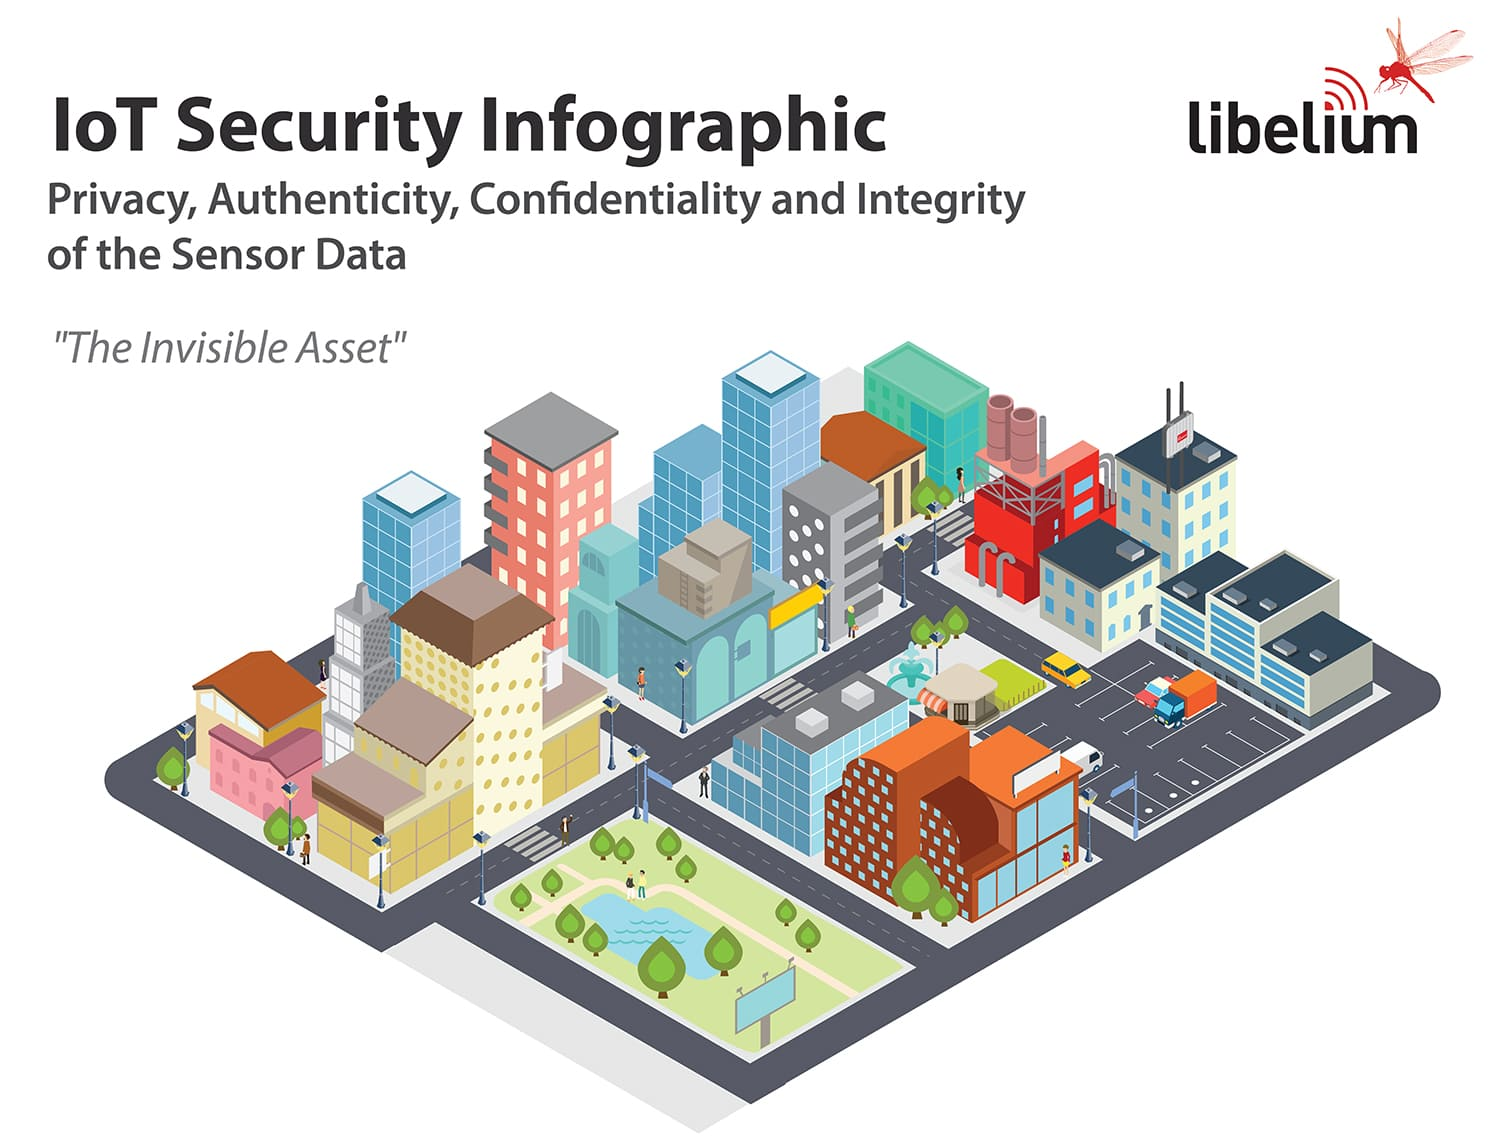 IoT Security Infographic